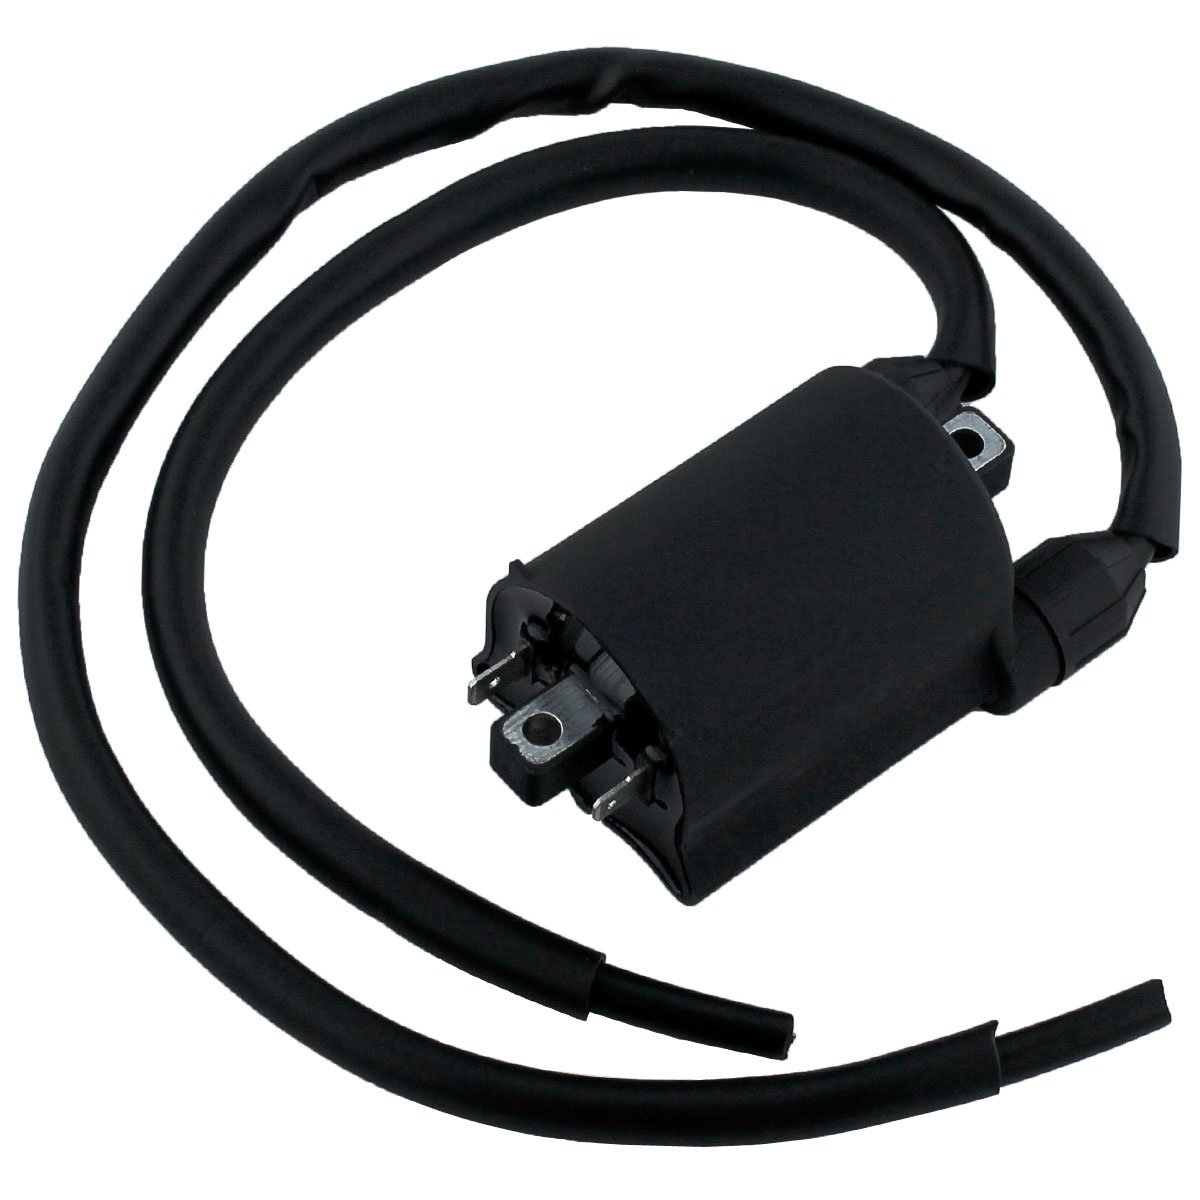 Amazon.com: Caltric IGNITION COIL FITS HONDA VT750DC VT750DCA VT750DCB  SHADOW SPIRIT 750 2001-2003 2005-2007: Automotive